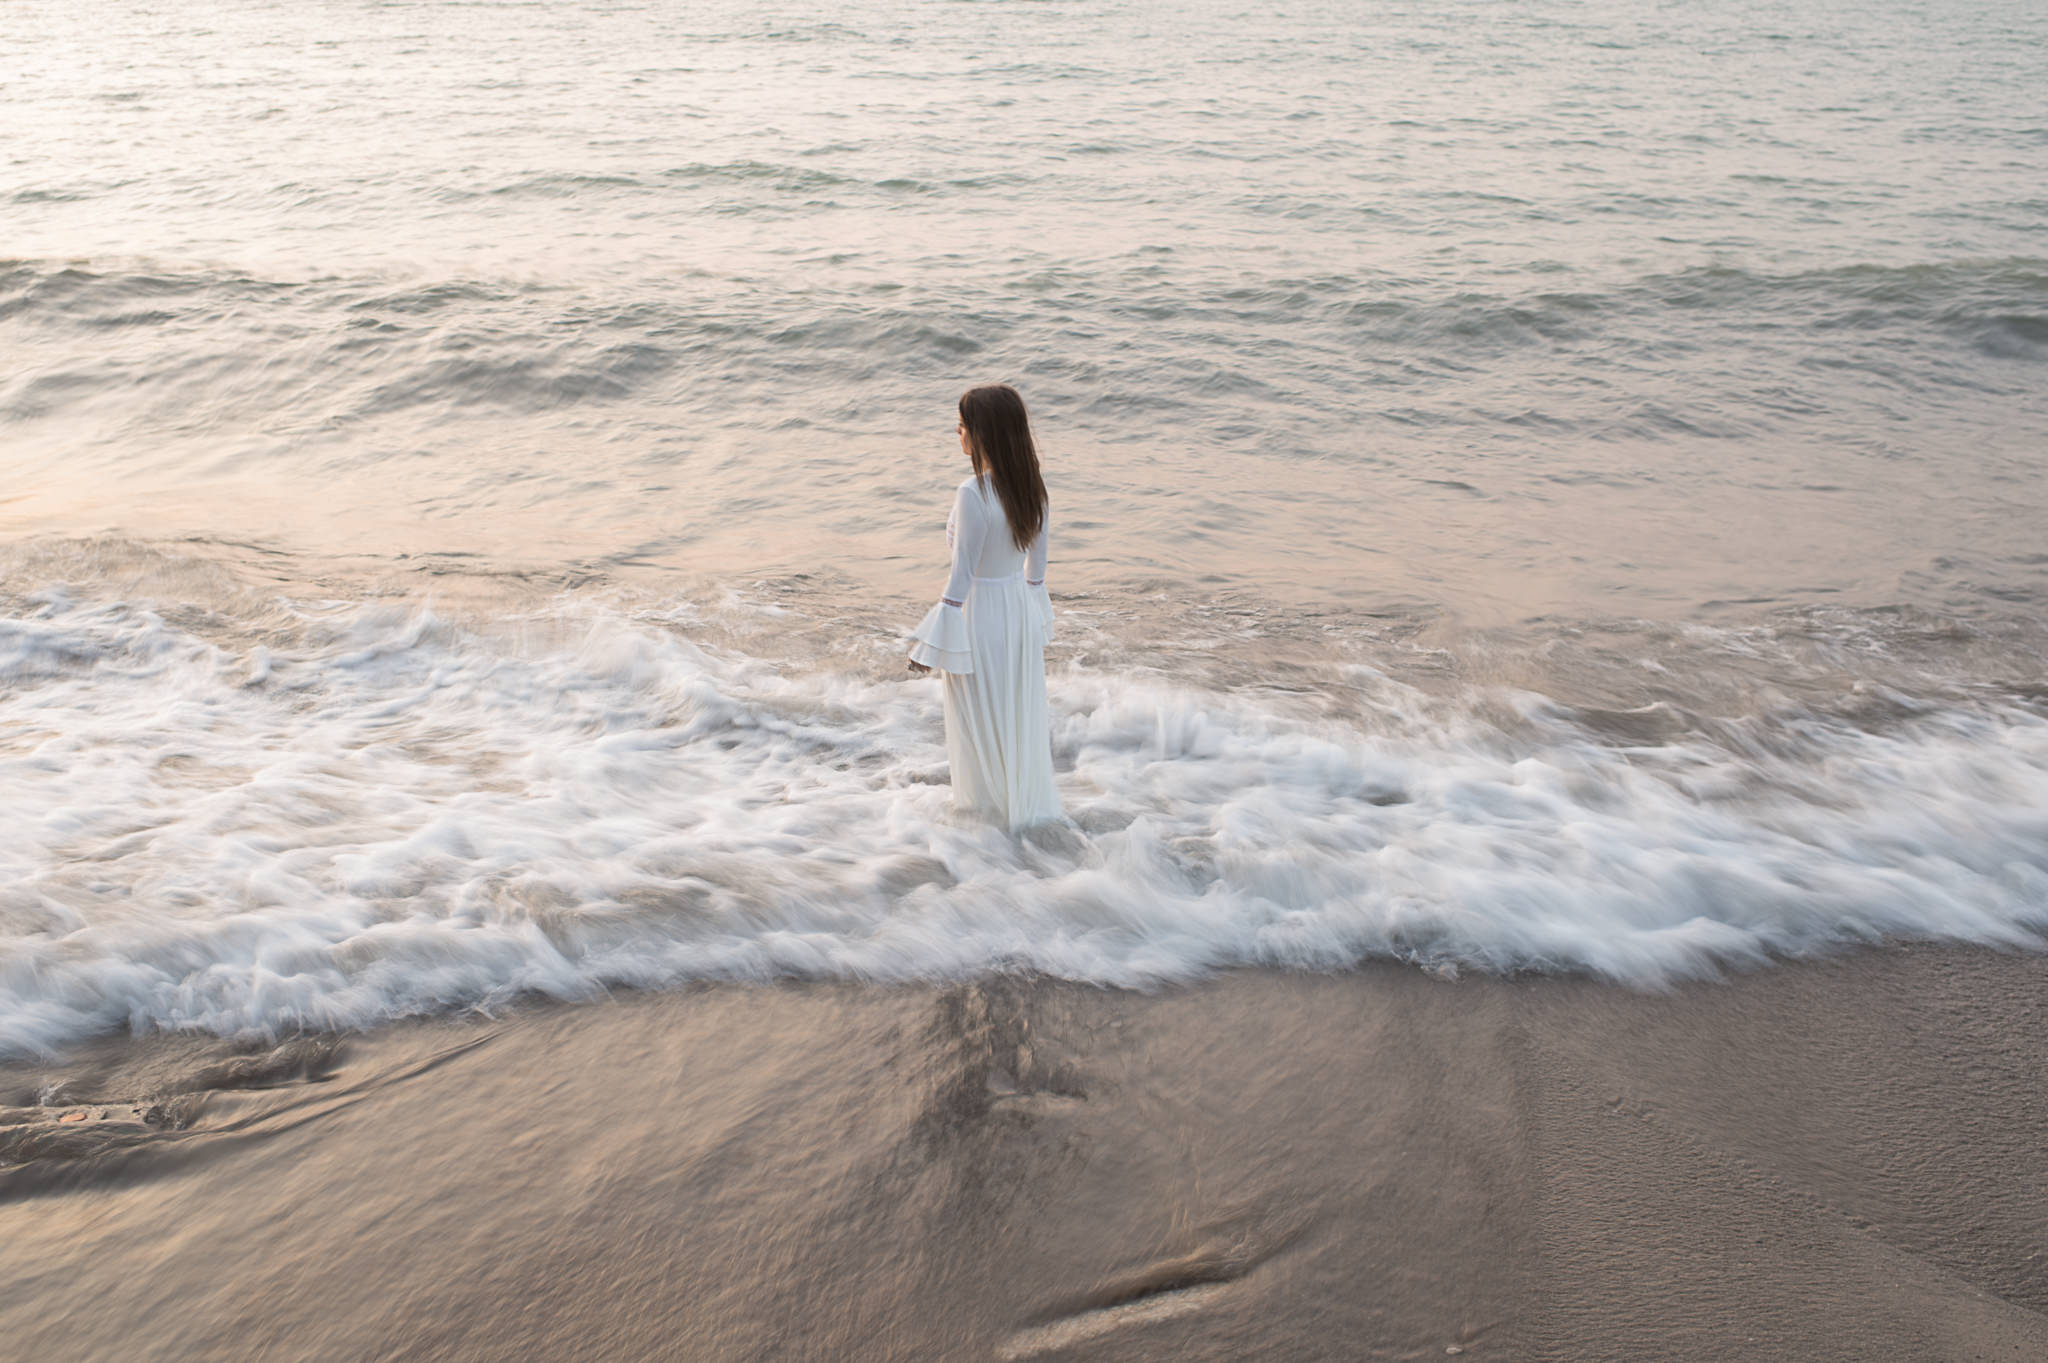 An unedited photo of a woman who stands in the waves of the sea.